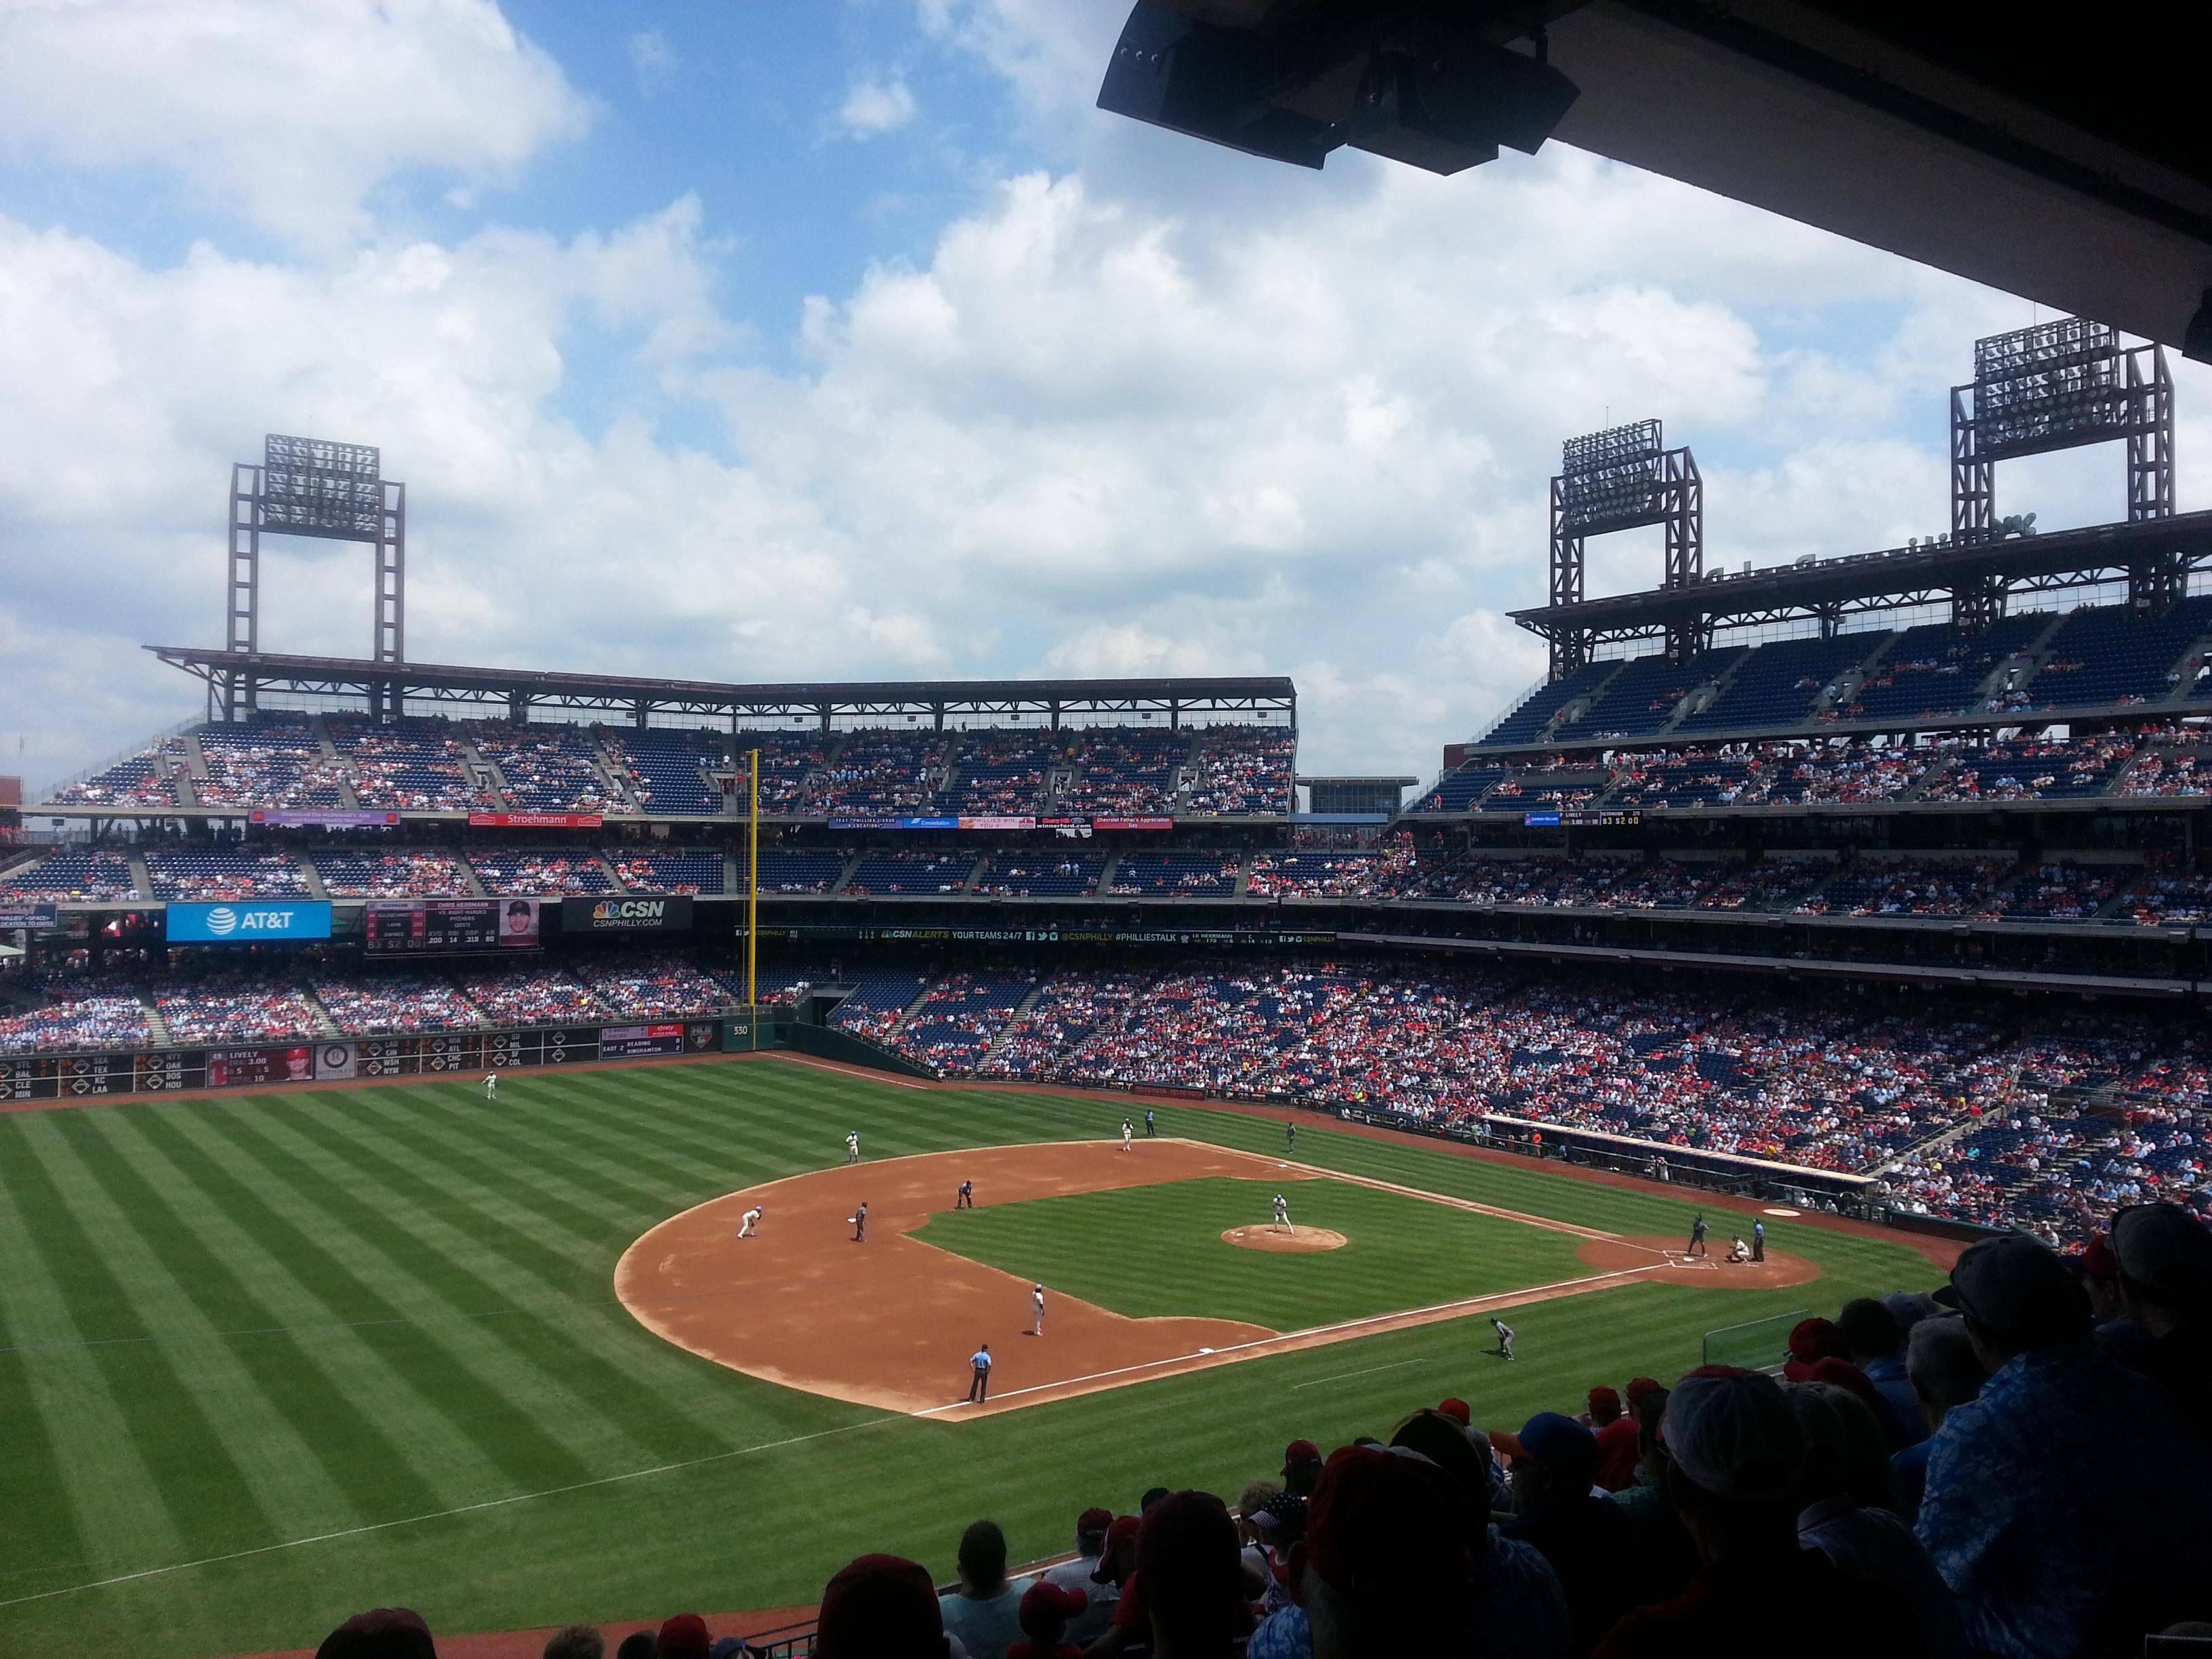 Citizens Bank Park Section 232 Row 9 Seat 20